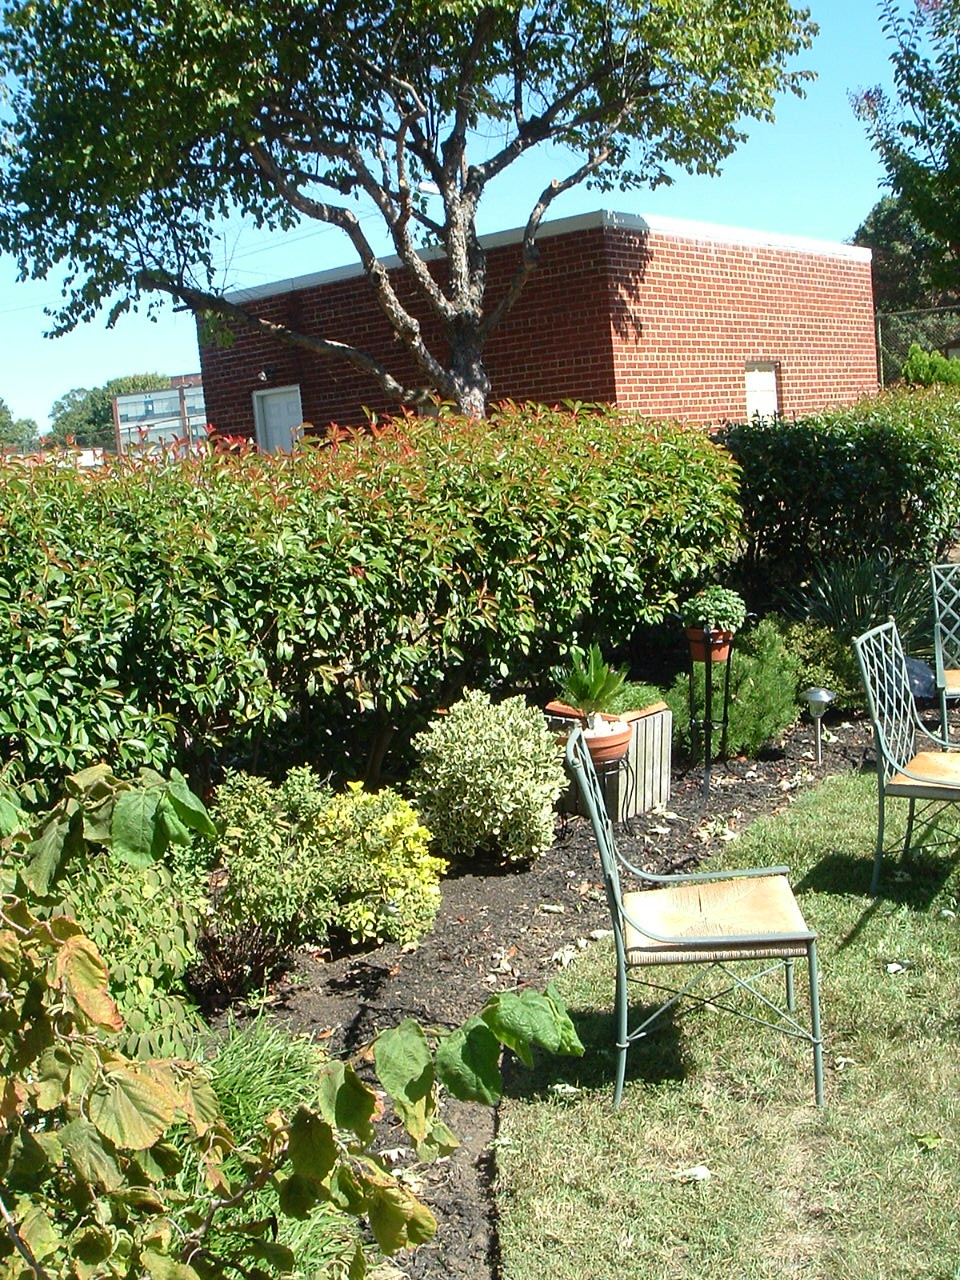 An Eastland Gardens Member's well-maintained gardens with two chairs for company.